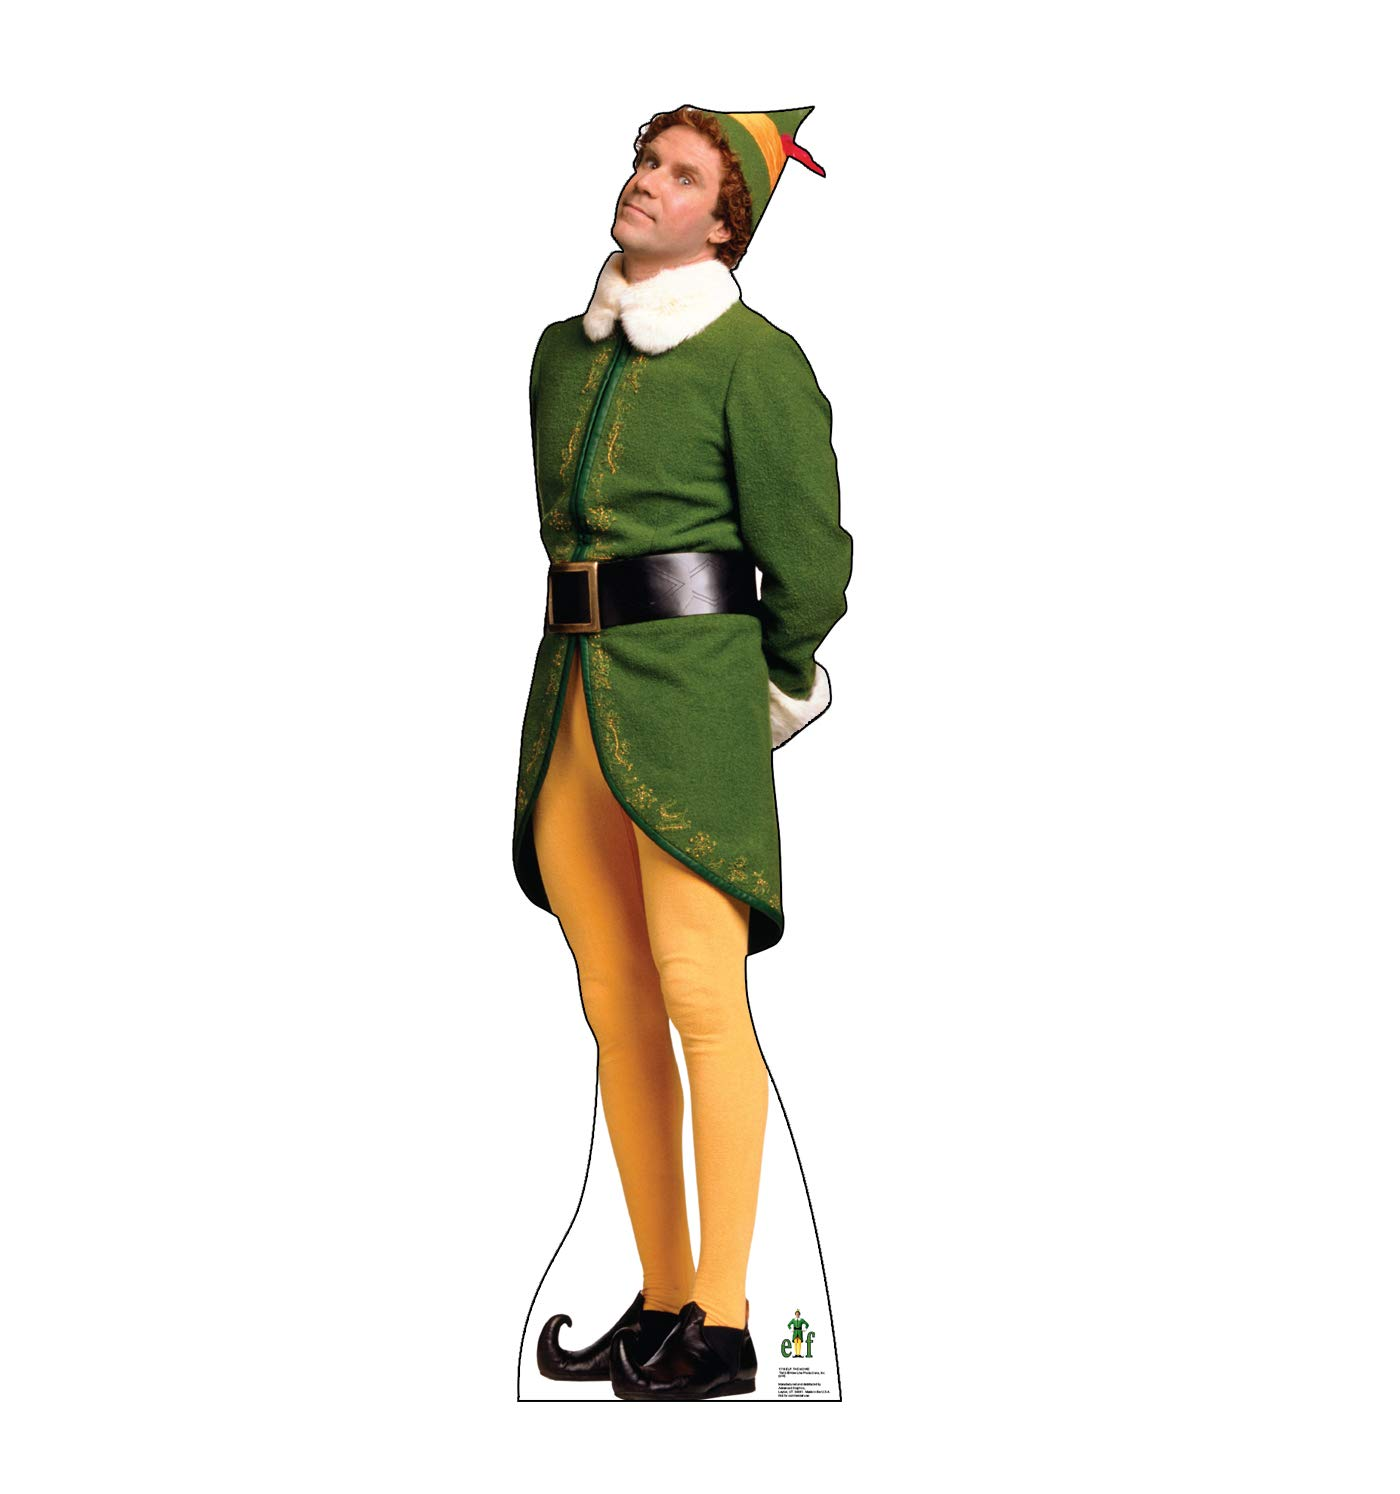 Advanced Graphics Buddy the Elf Concerned Life Size Cardboard Cutout Standup - Elf (2003 Film) 1719